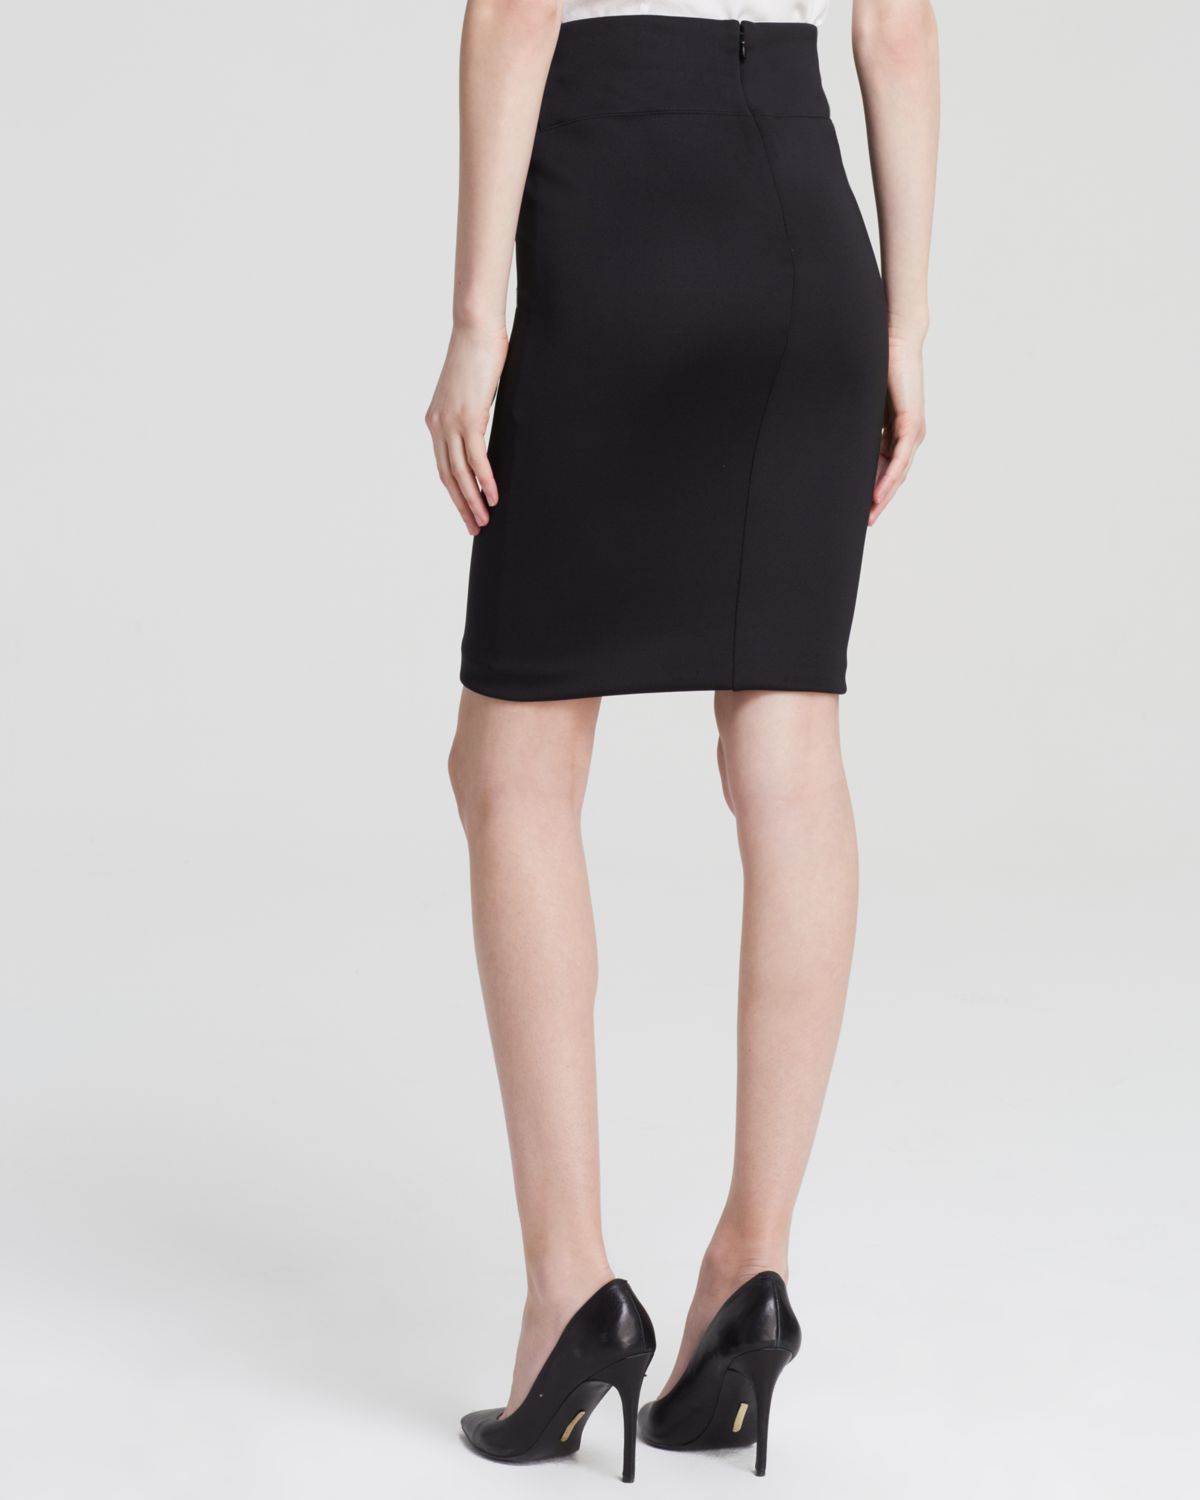 247aca8aa0 Guess Pencil Skirt - Mesh Inset in Black - Lyst